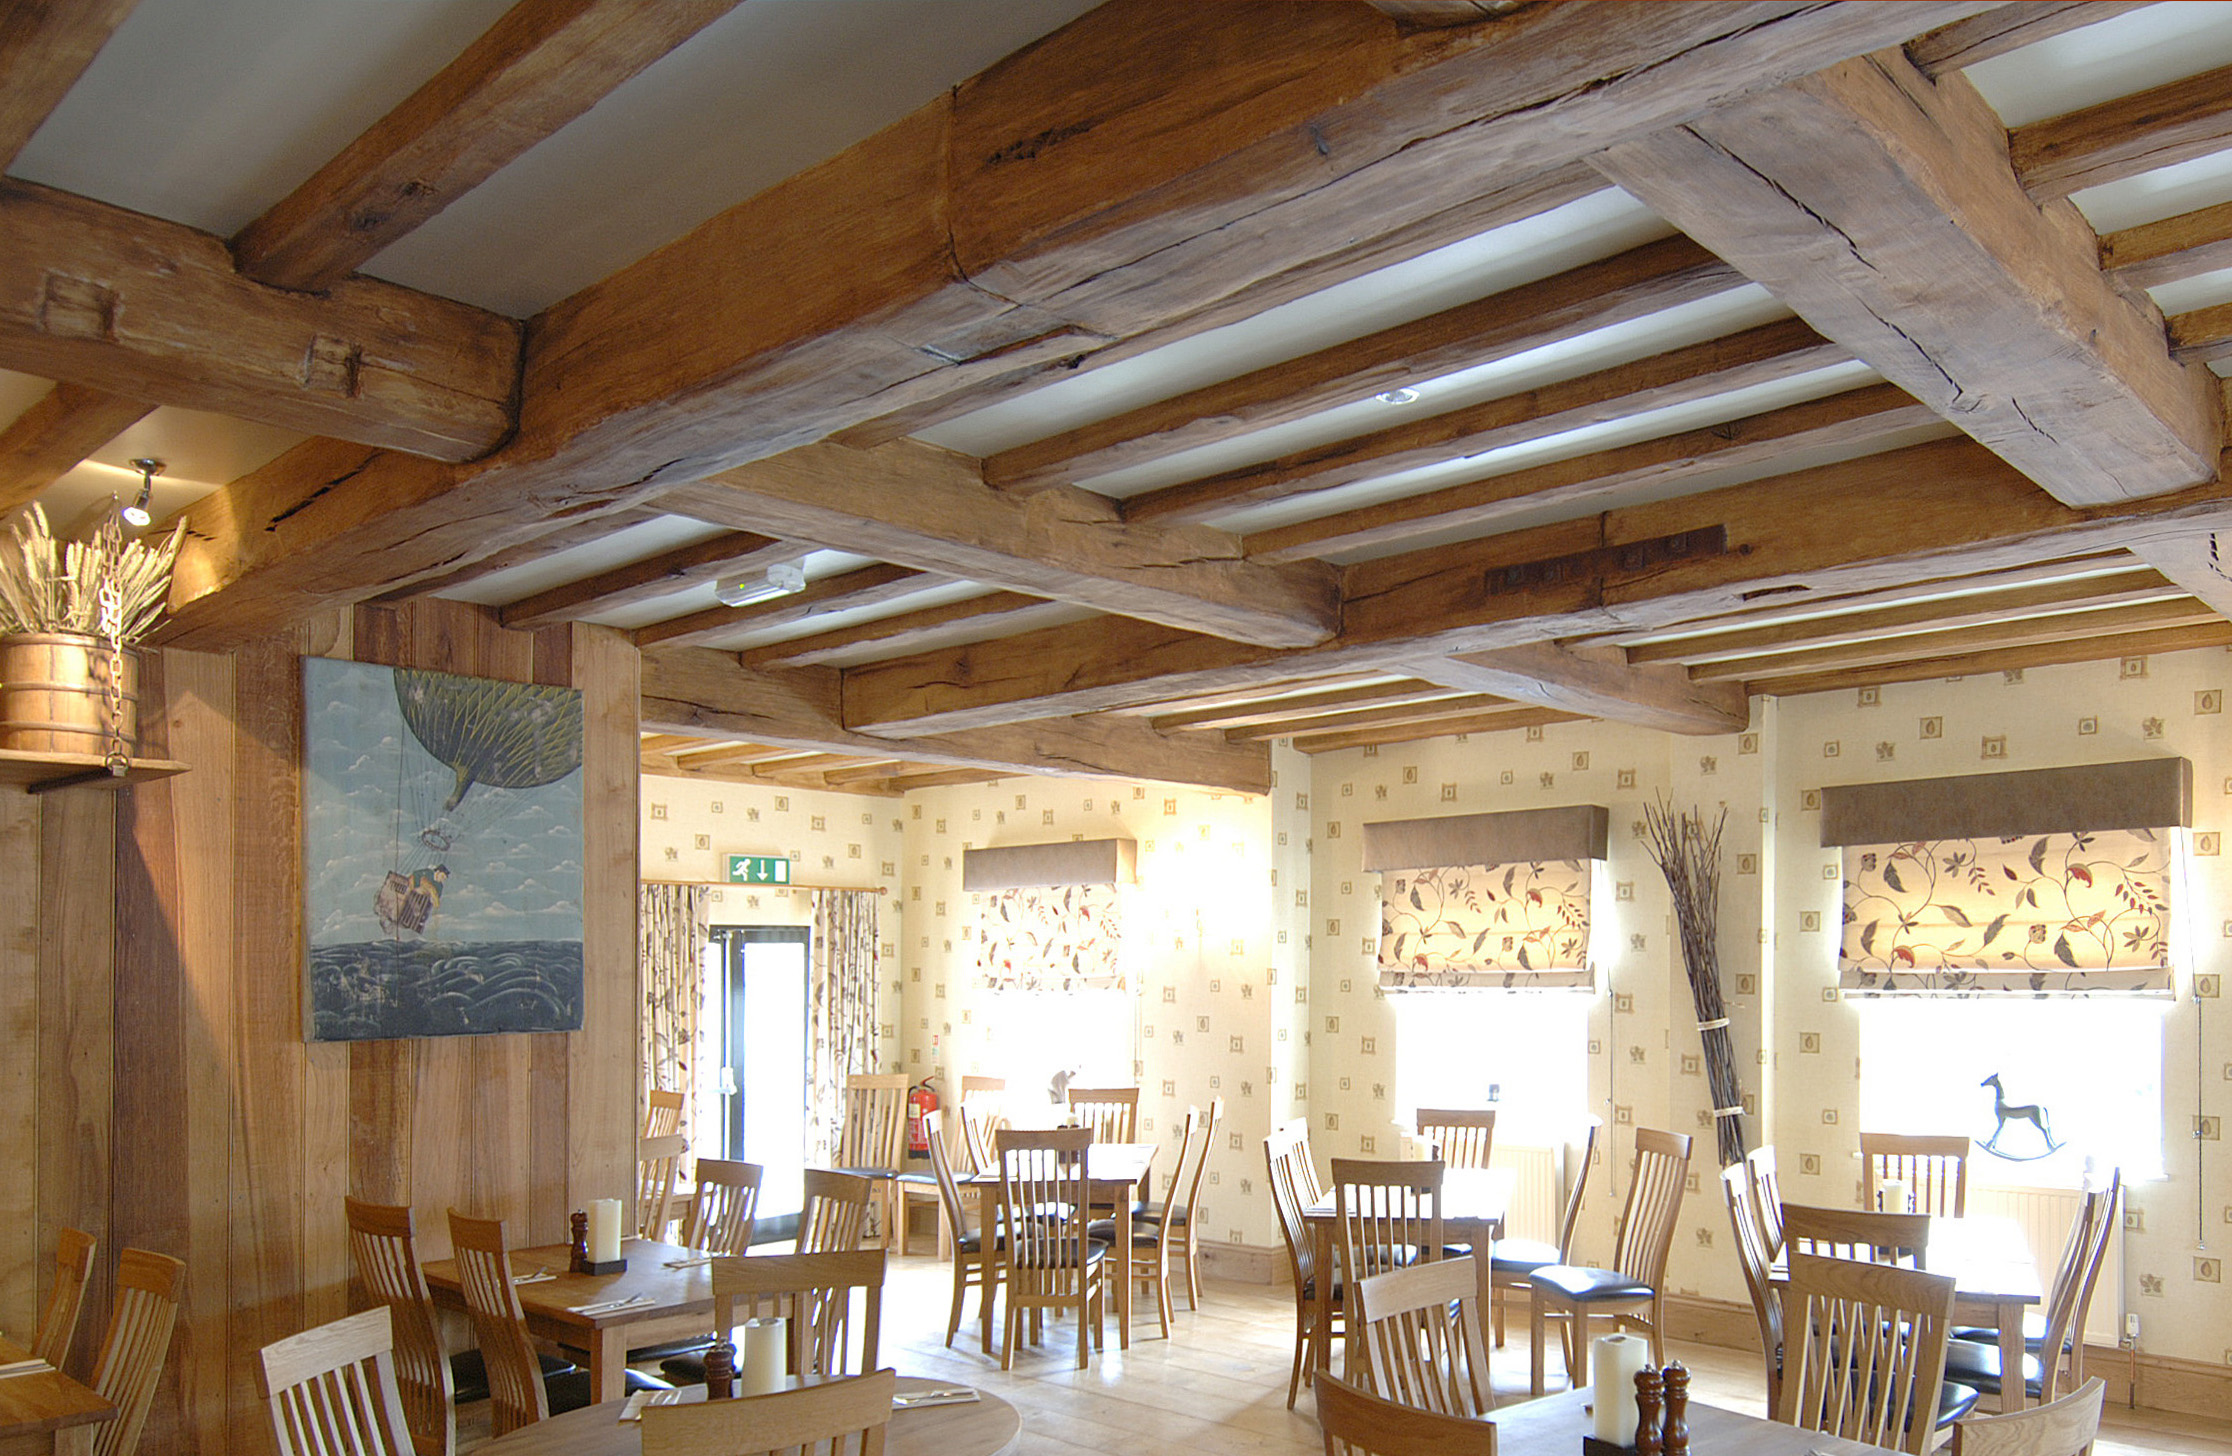 wood sebring design for faux ideas ceiling beams exciting services remodeling home